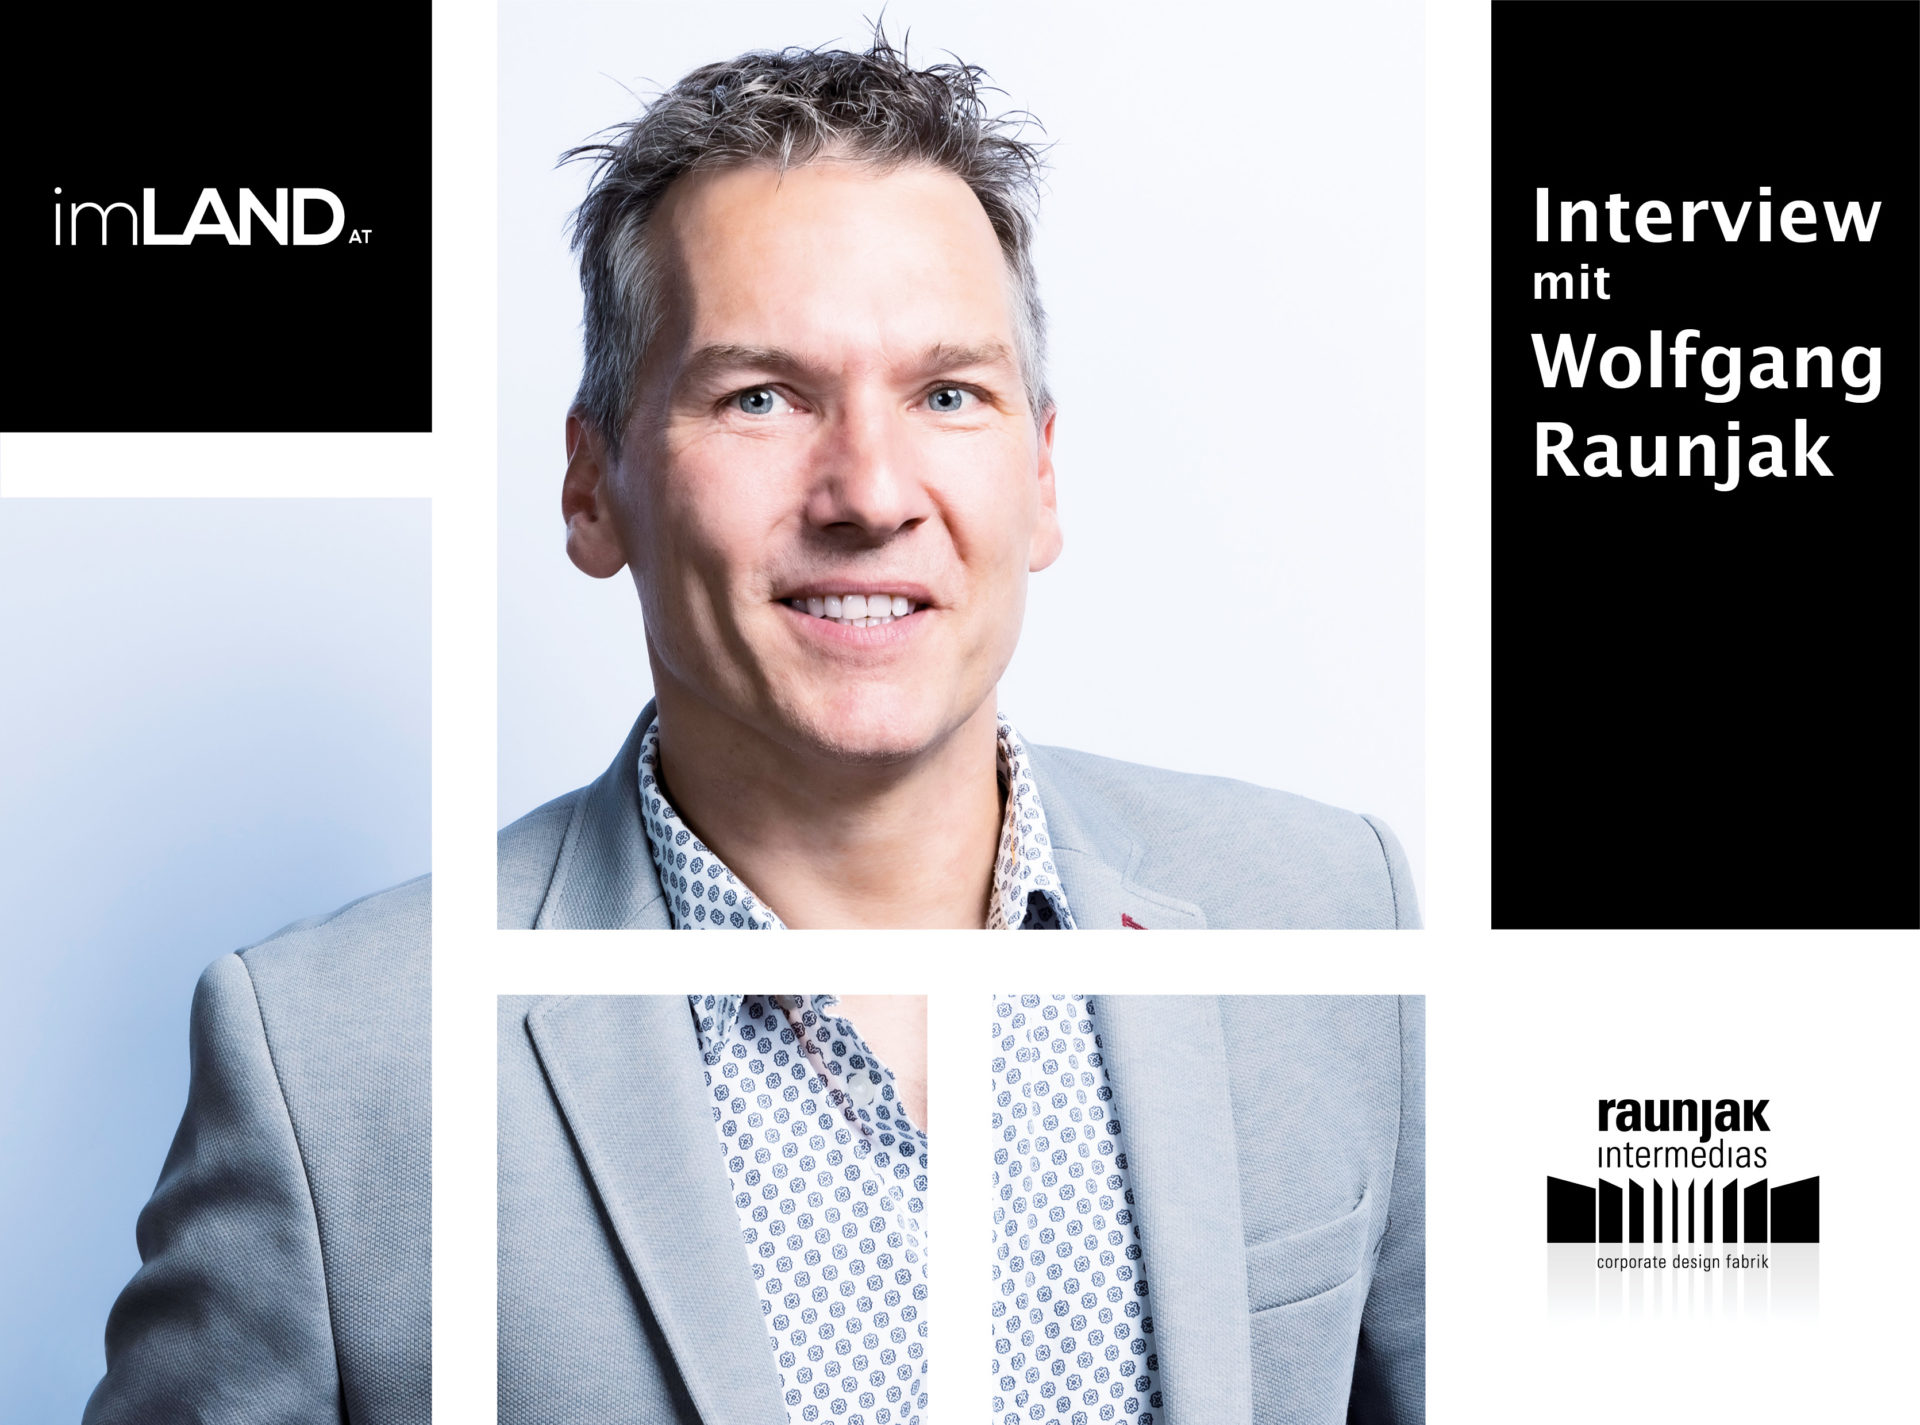 Wolfgang-Interview